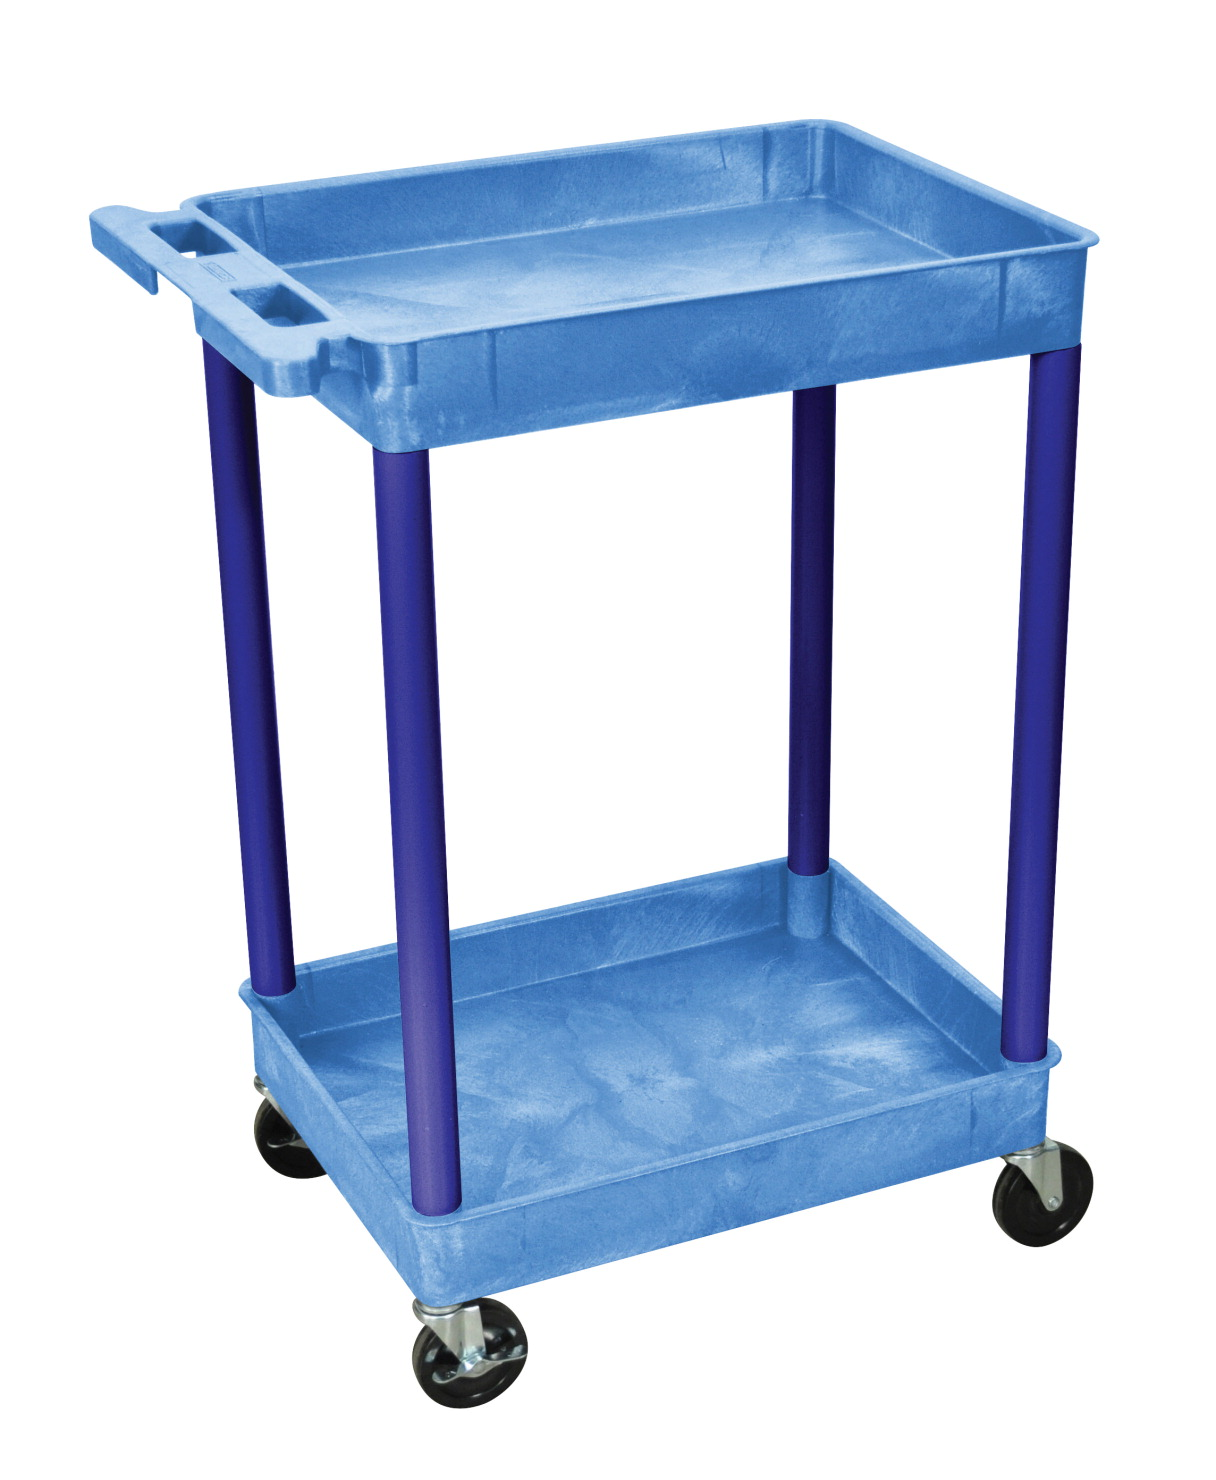 Luxor H Wilson 2-Shelves Multi-Purpose Utility Tub Cart, 24 in W X 18 in D X 37-1/2 in H, HDPE, Blue, 4 Wheel